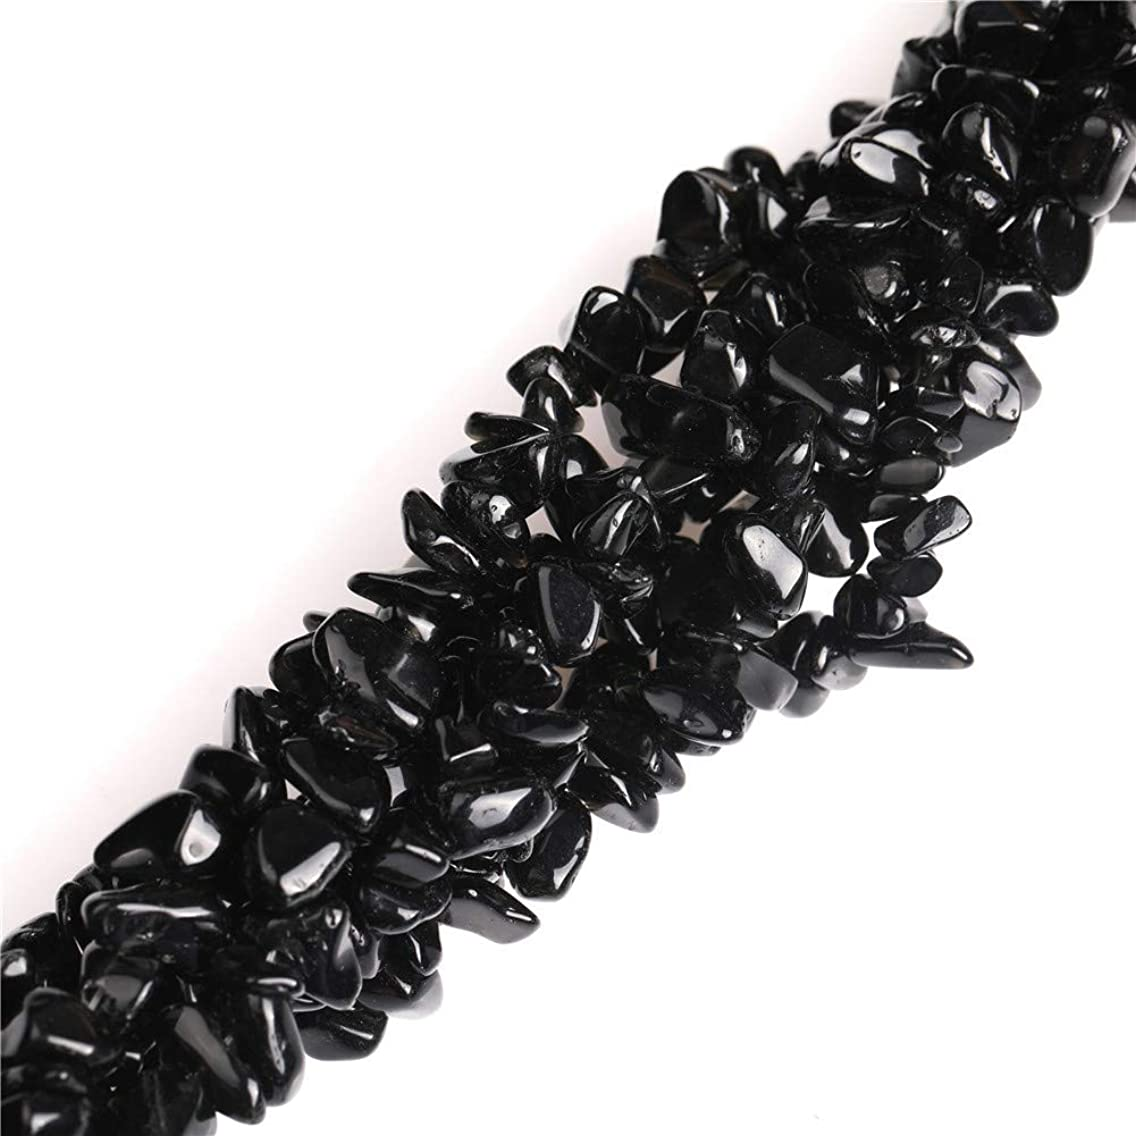 6-8mm Black Glass Gravel Gemstone Chips Beads for Jewelry Making Wholesale Beads Loose Beads Freeform Black 34